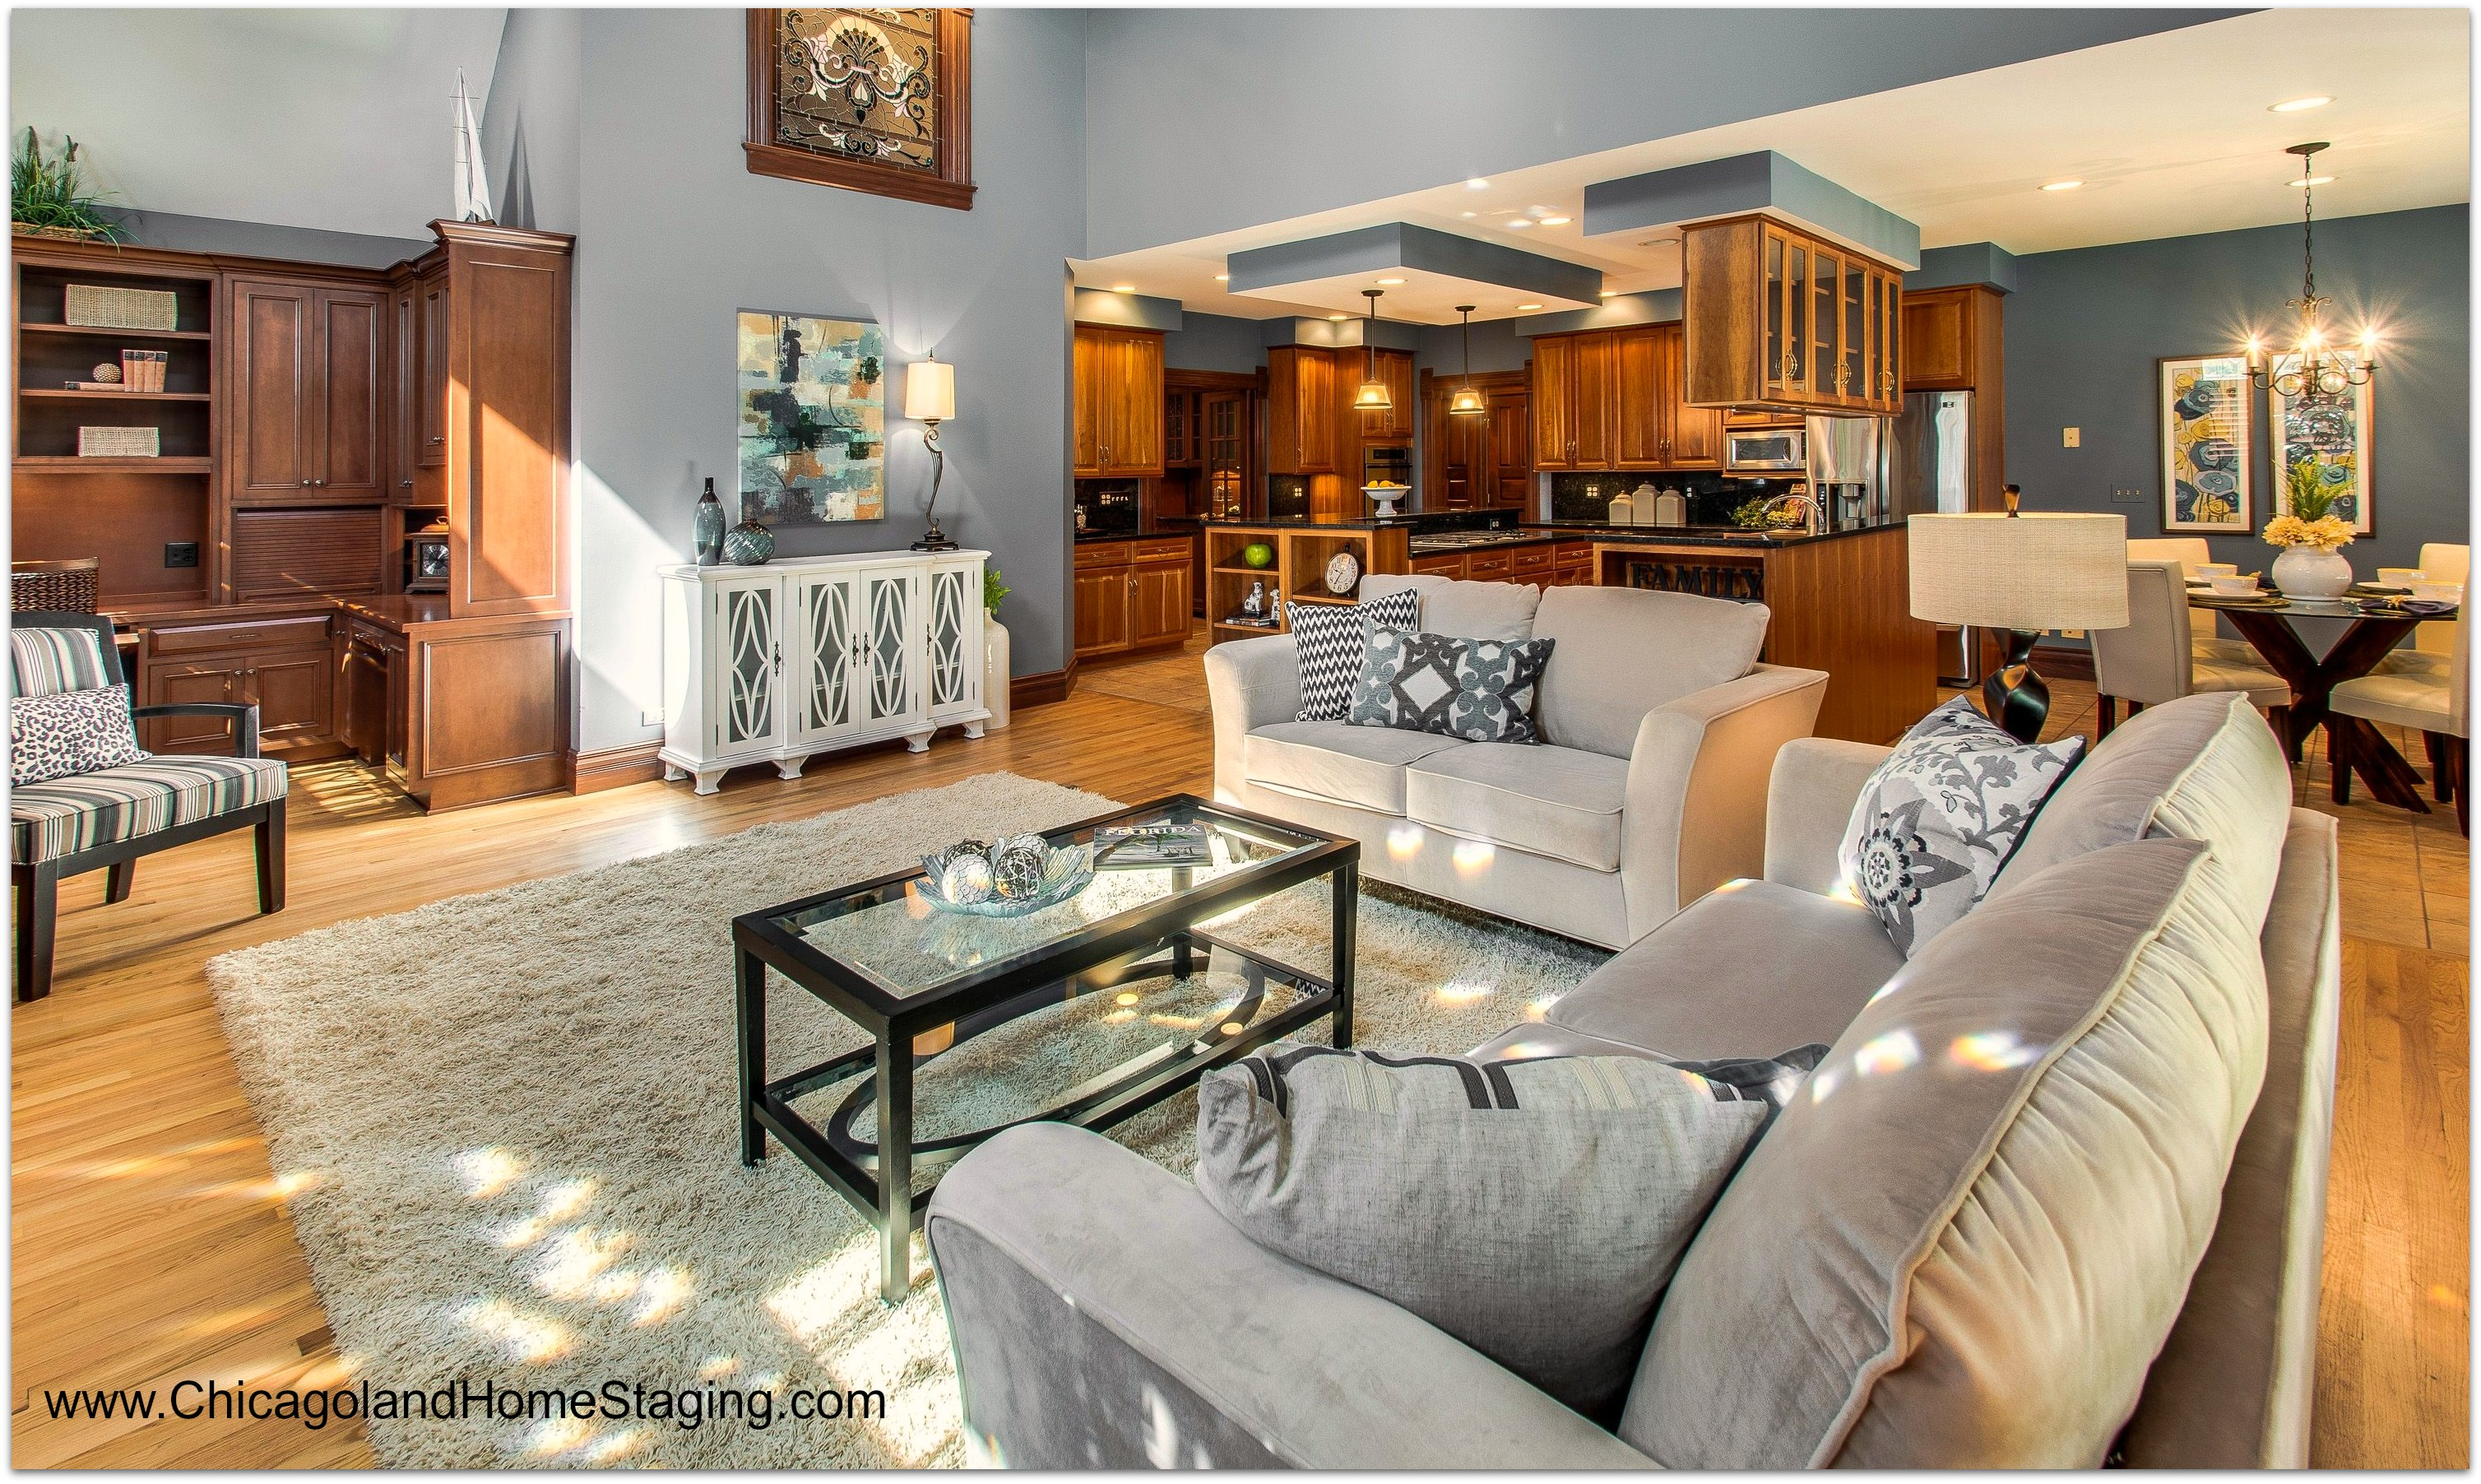 Home Staging in Naperville: Does this floor plan make sense?